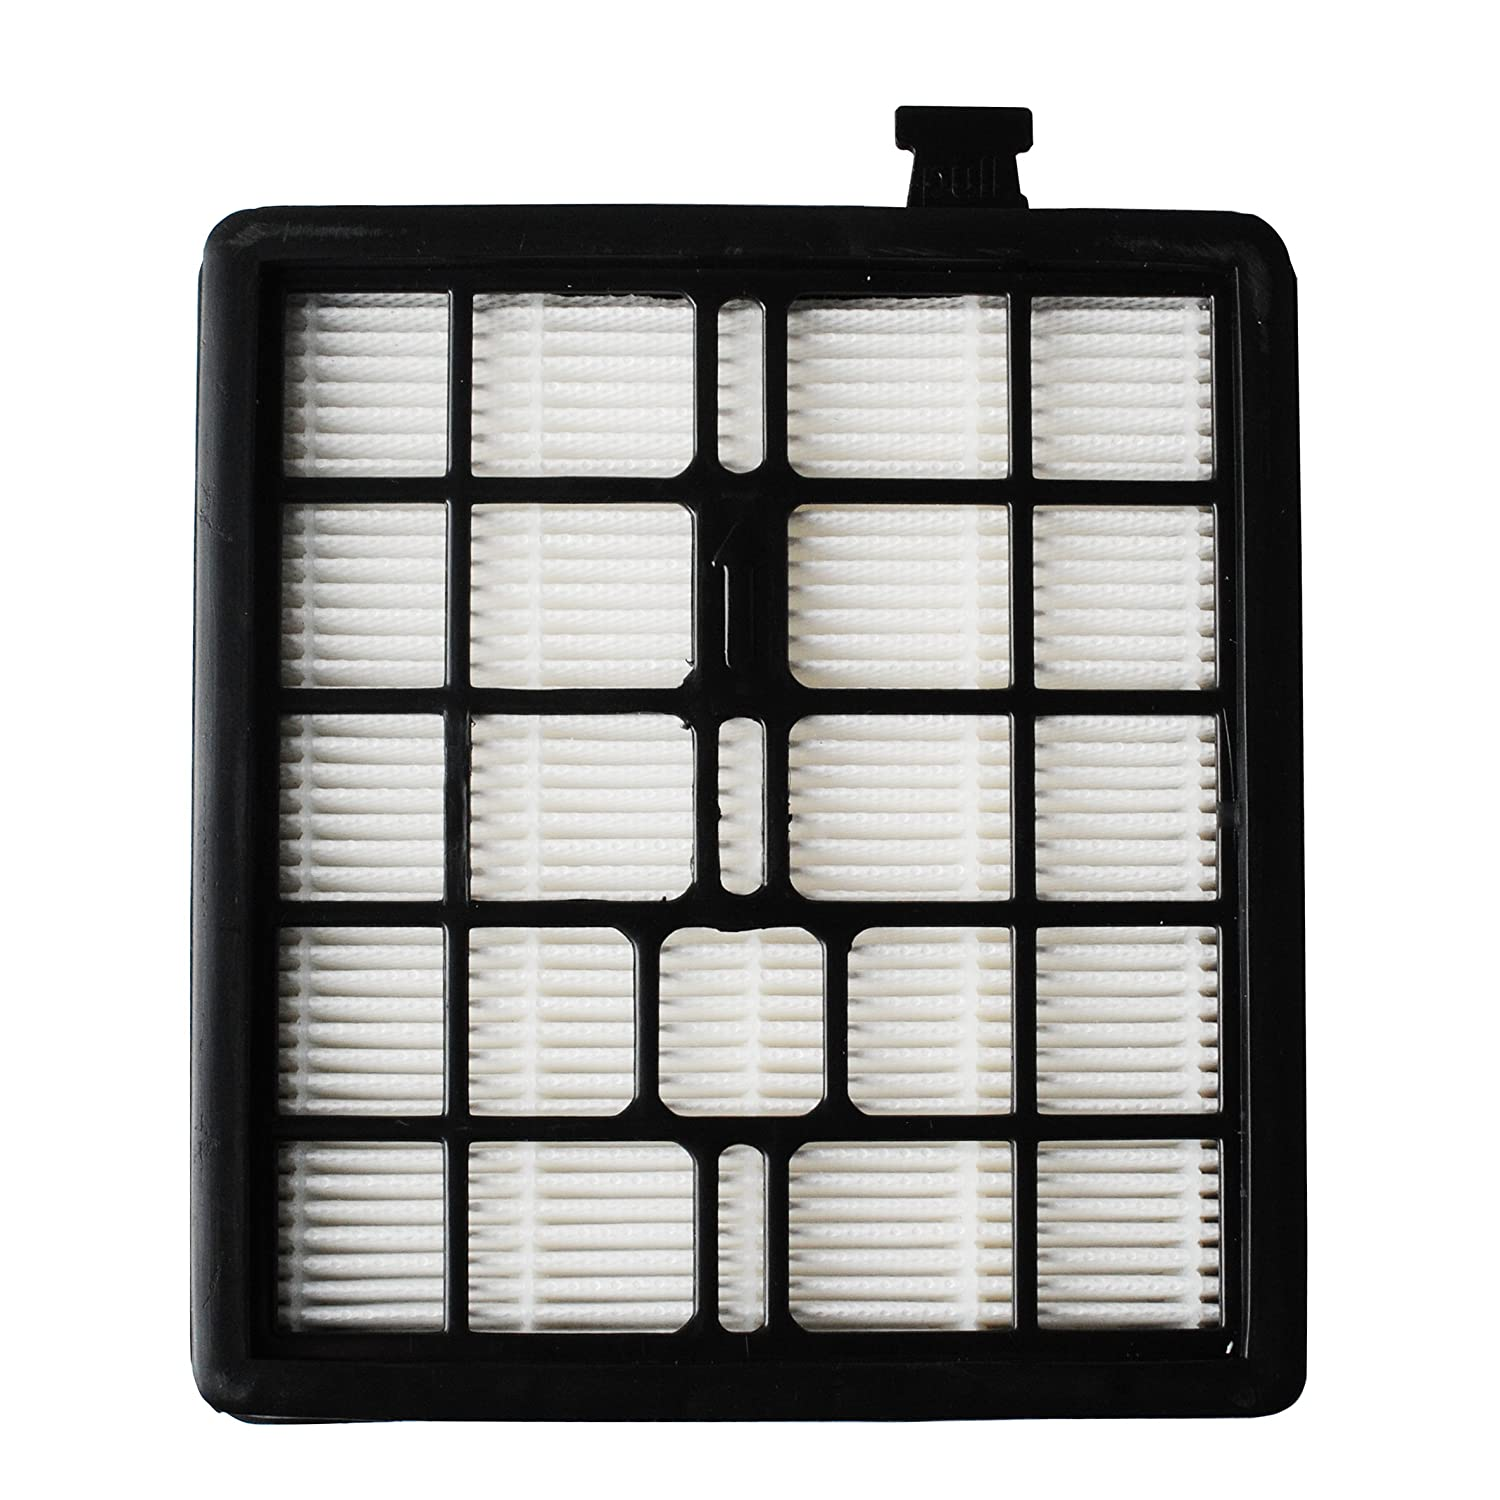 Podoy F45 Filter Compatible for Dirt Devil Replacement Vacuum Filter Fits Pets Canister SD40000 & EZ Lite Canister SD40010, 2KQ0107000 2-KQ0107-000 F45 F-45